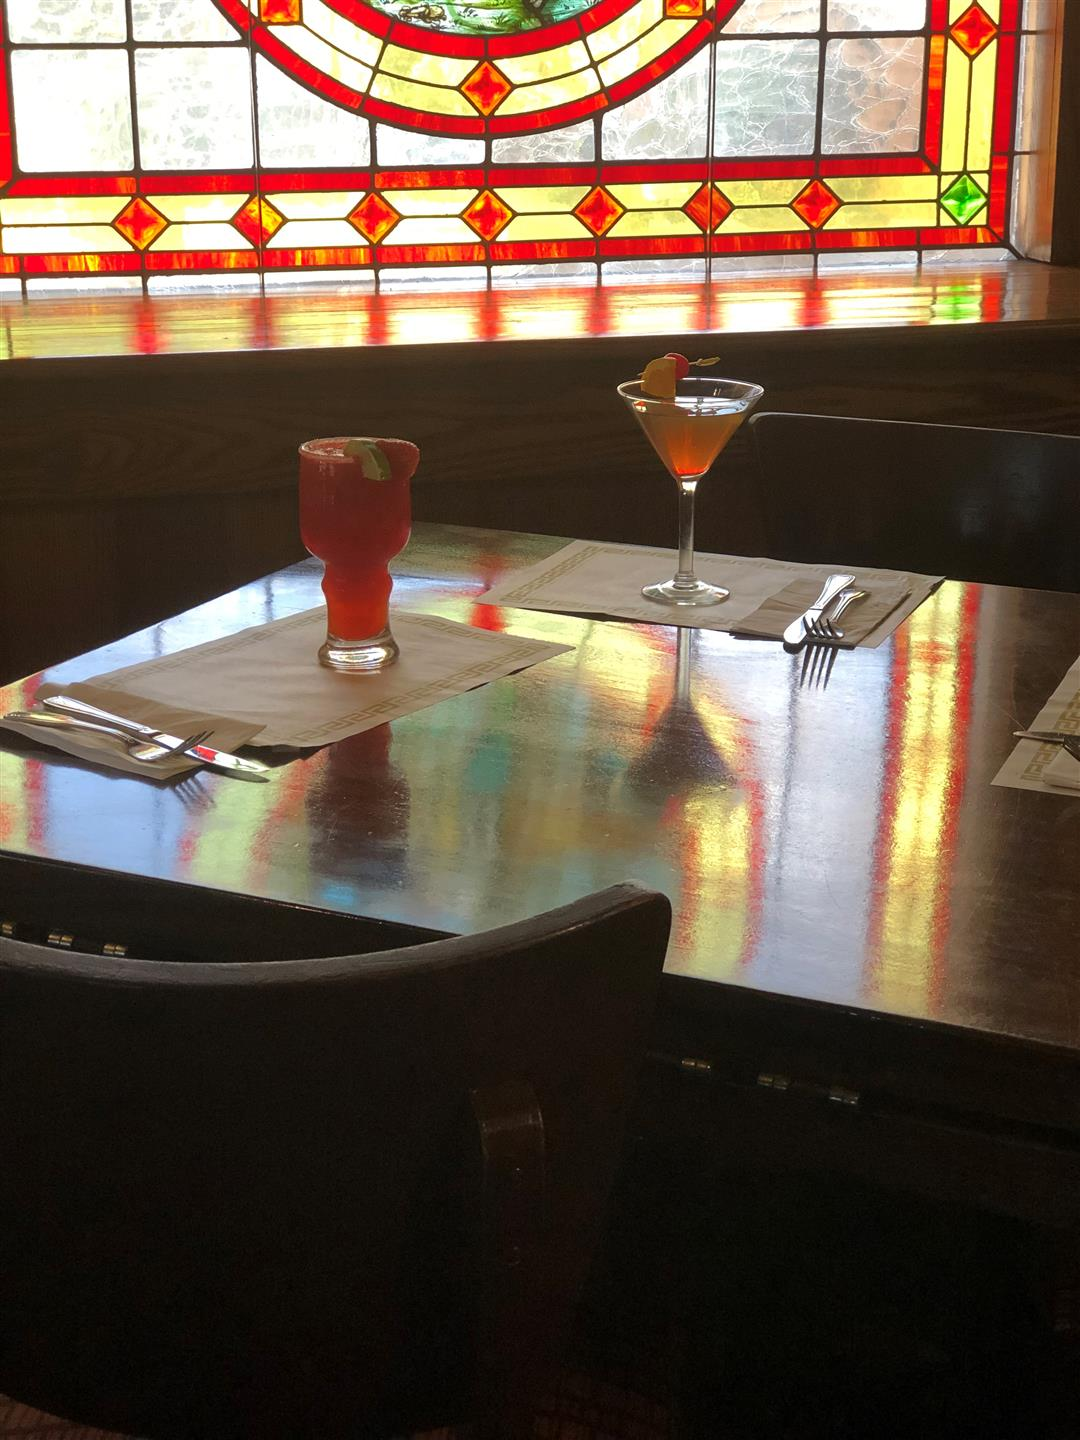 Two cocktails on wooden table in front of stained glass window